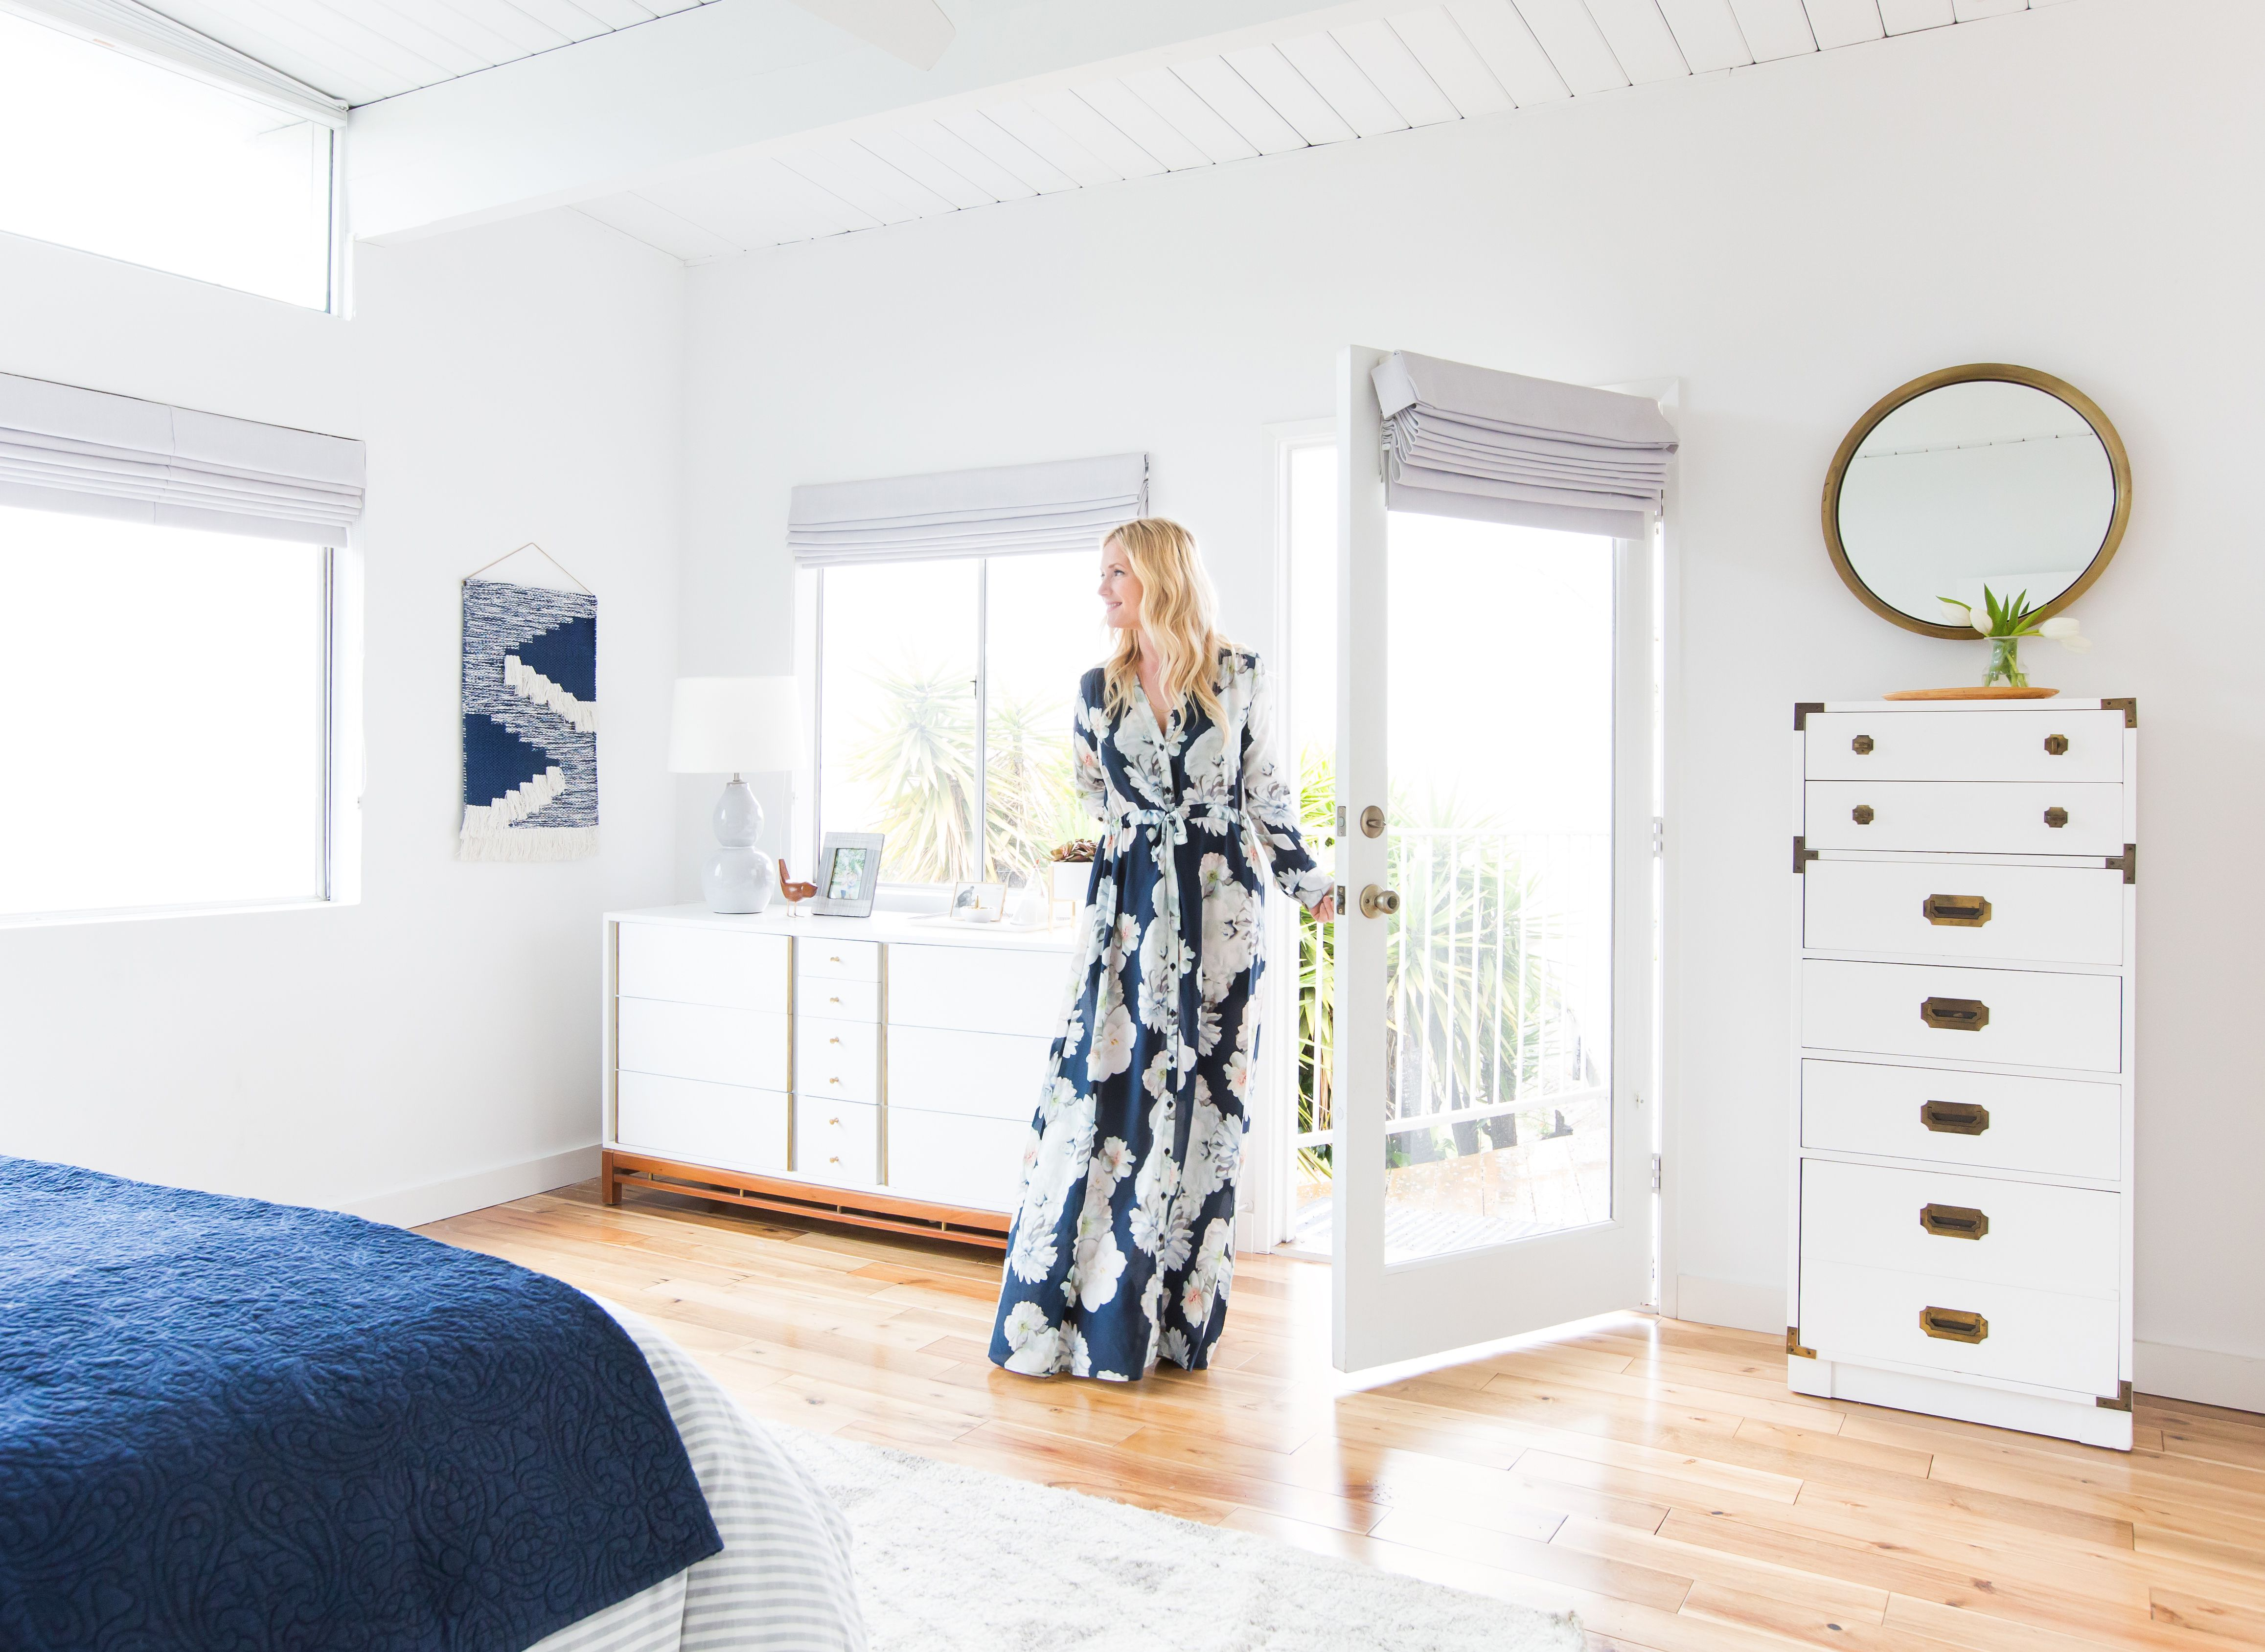 Decorating Trends on the Way Out in 2019, According to Top ...